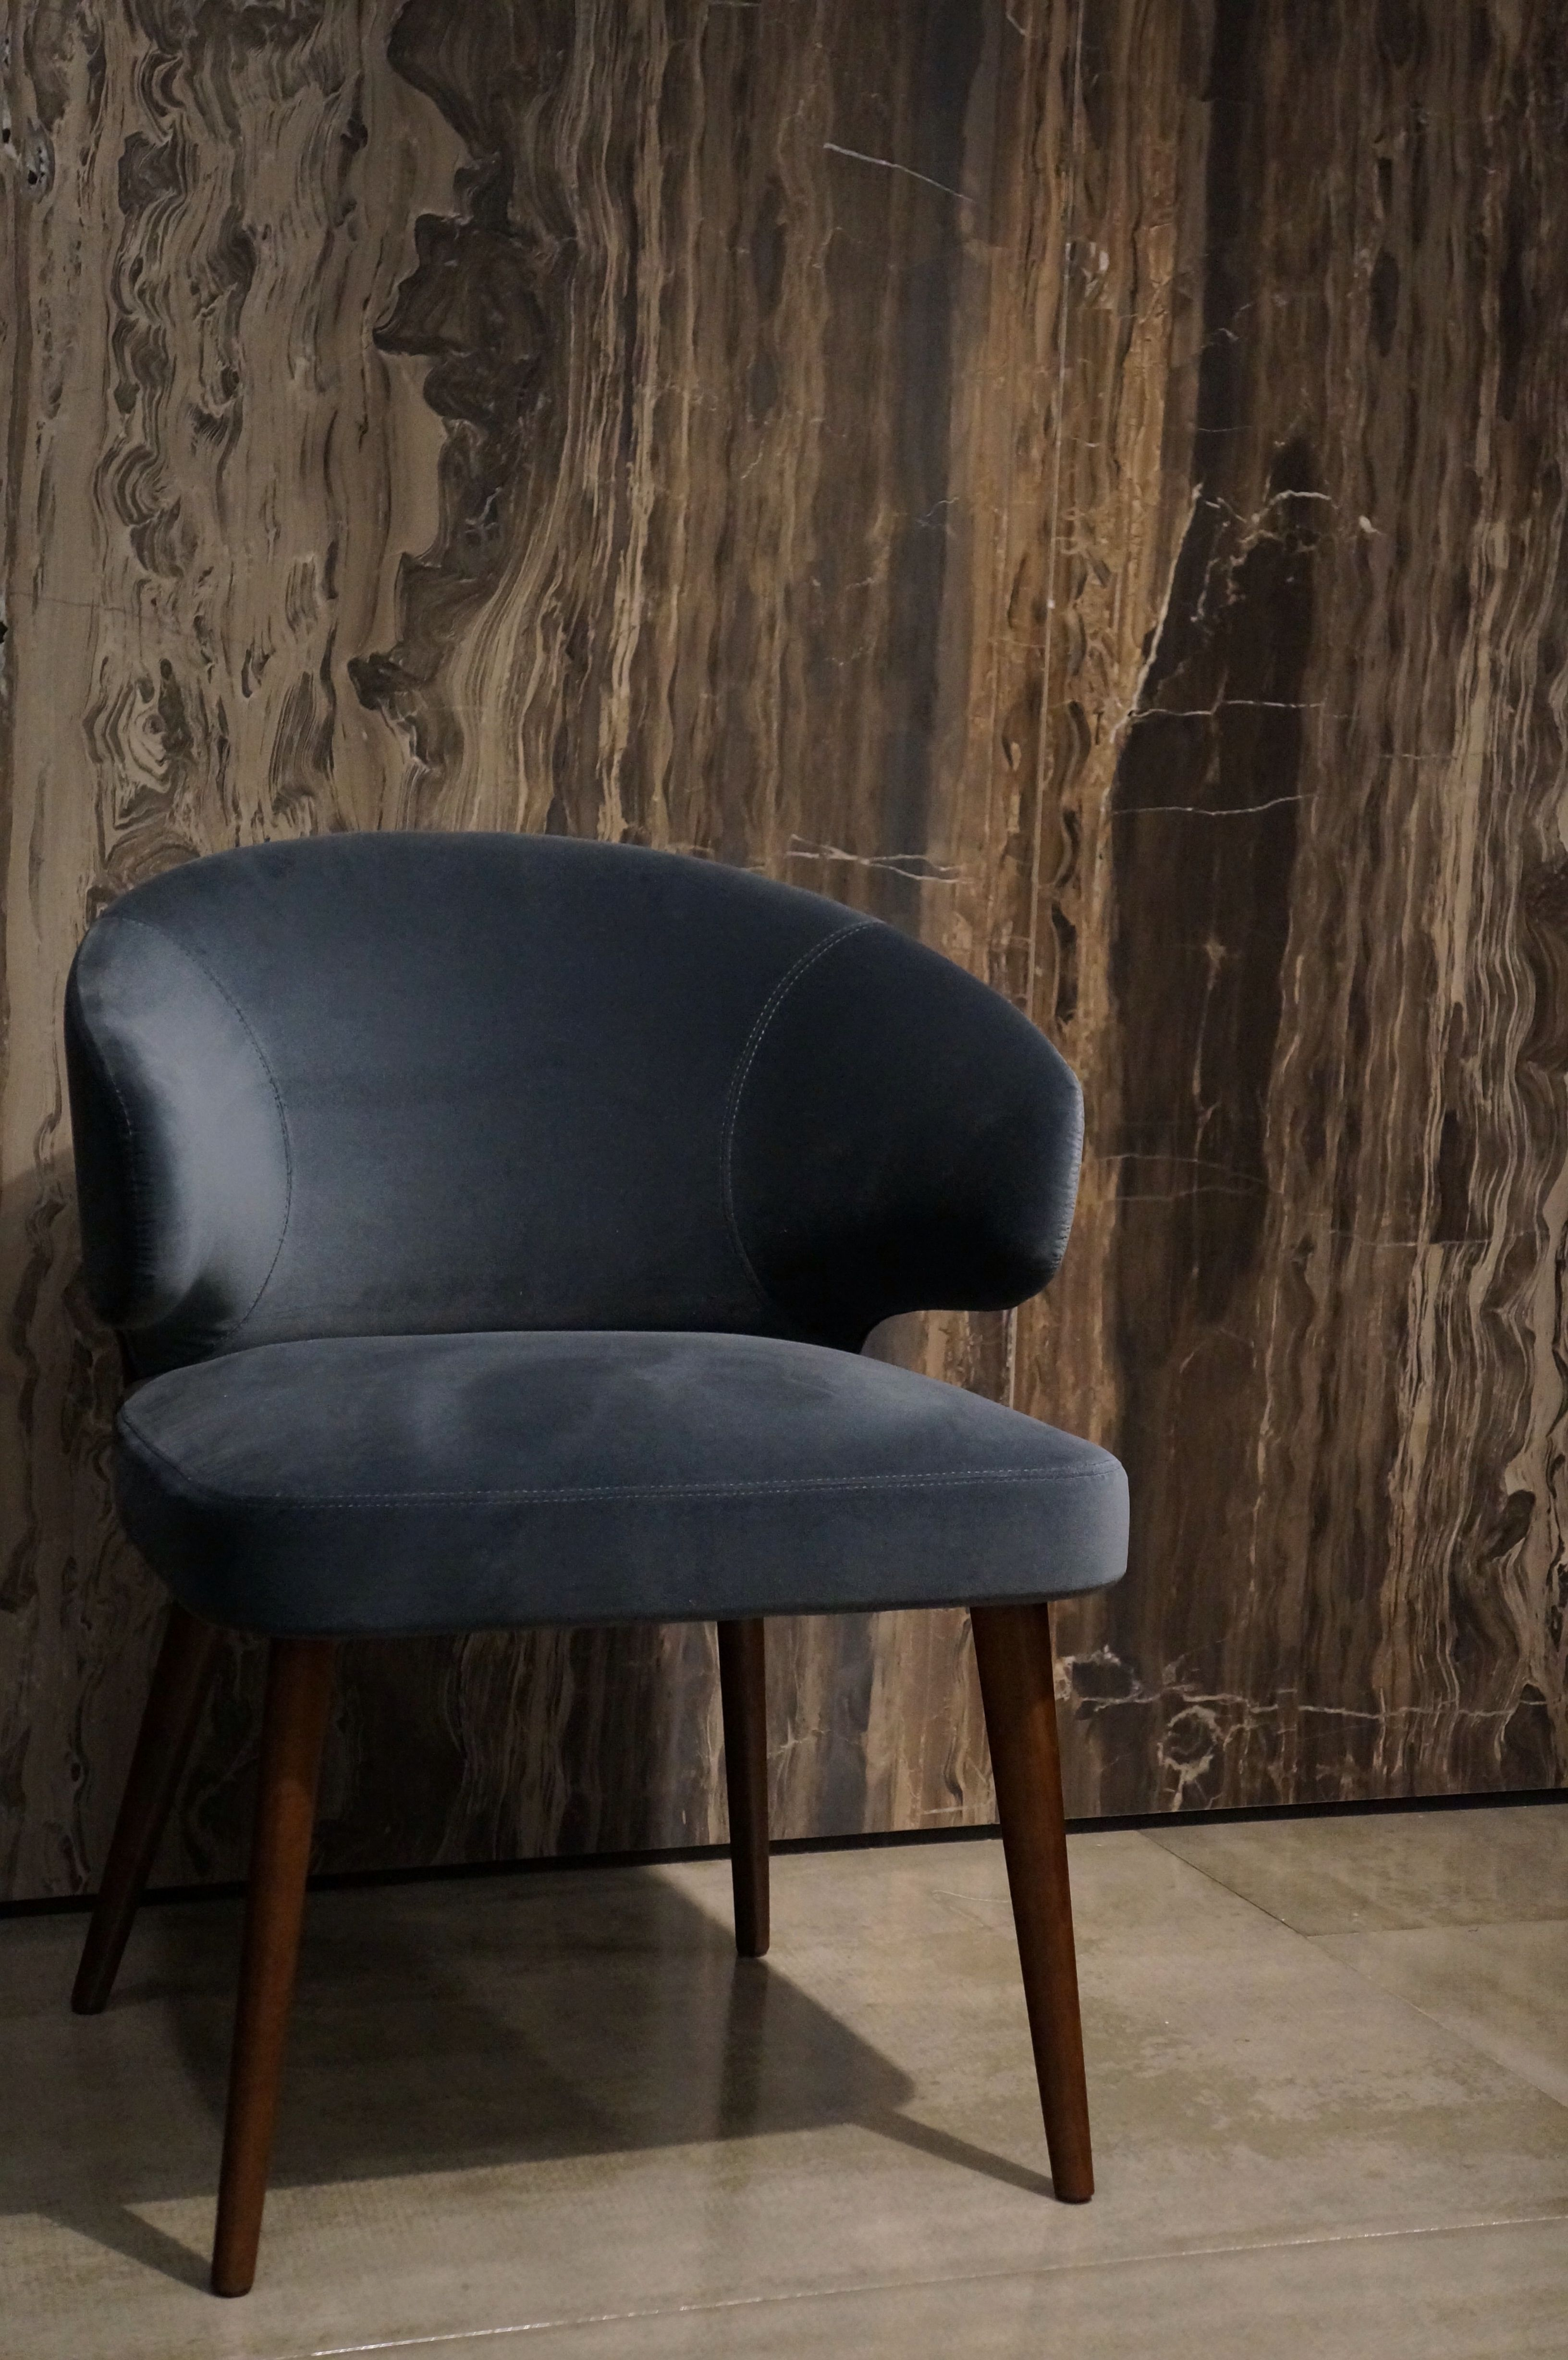 Obviously You Are Not Only Looking For Amazing Dining Chairs But